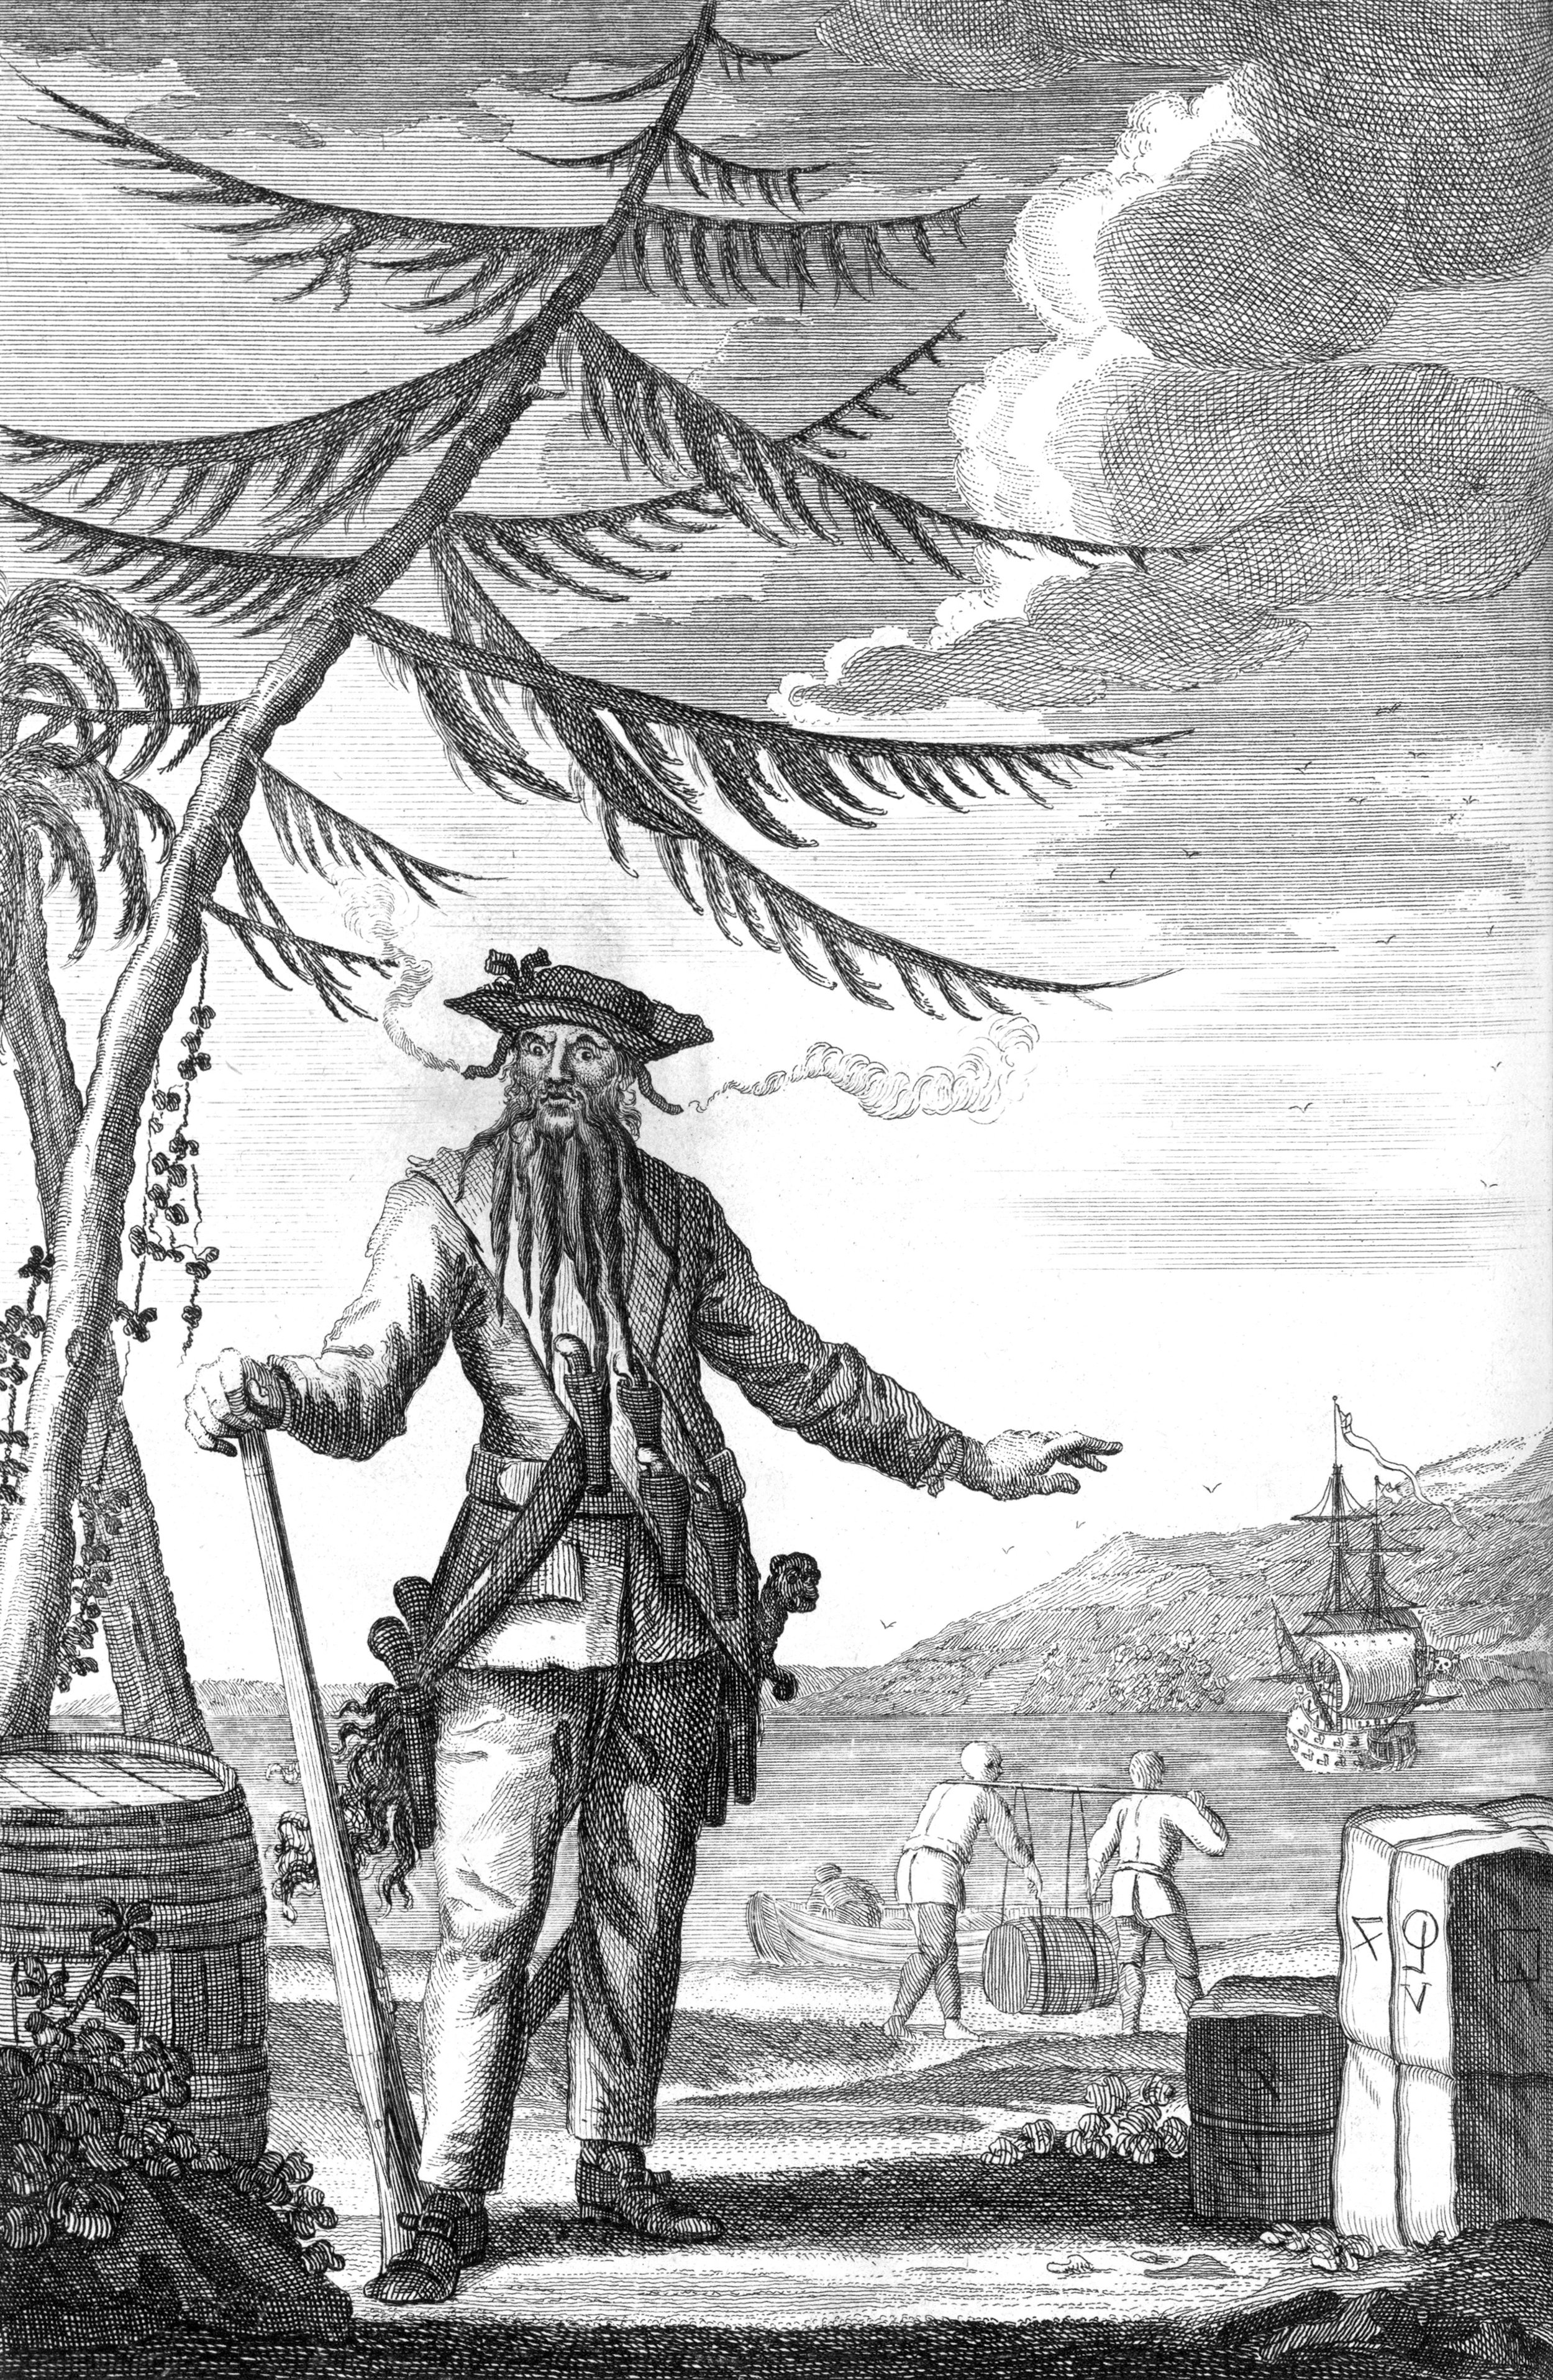 An engraving of Edward Teach, better known as Blackbeard, from 1736. Click  HERE  for image source.